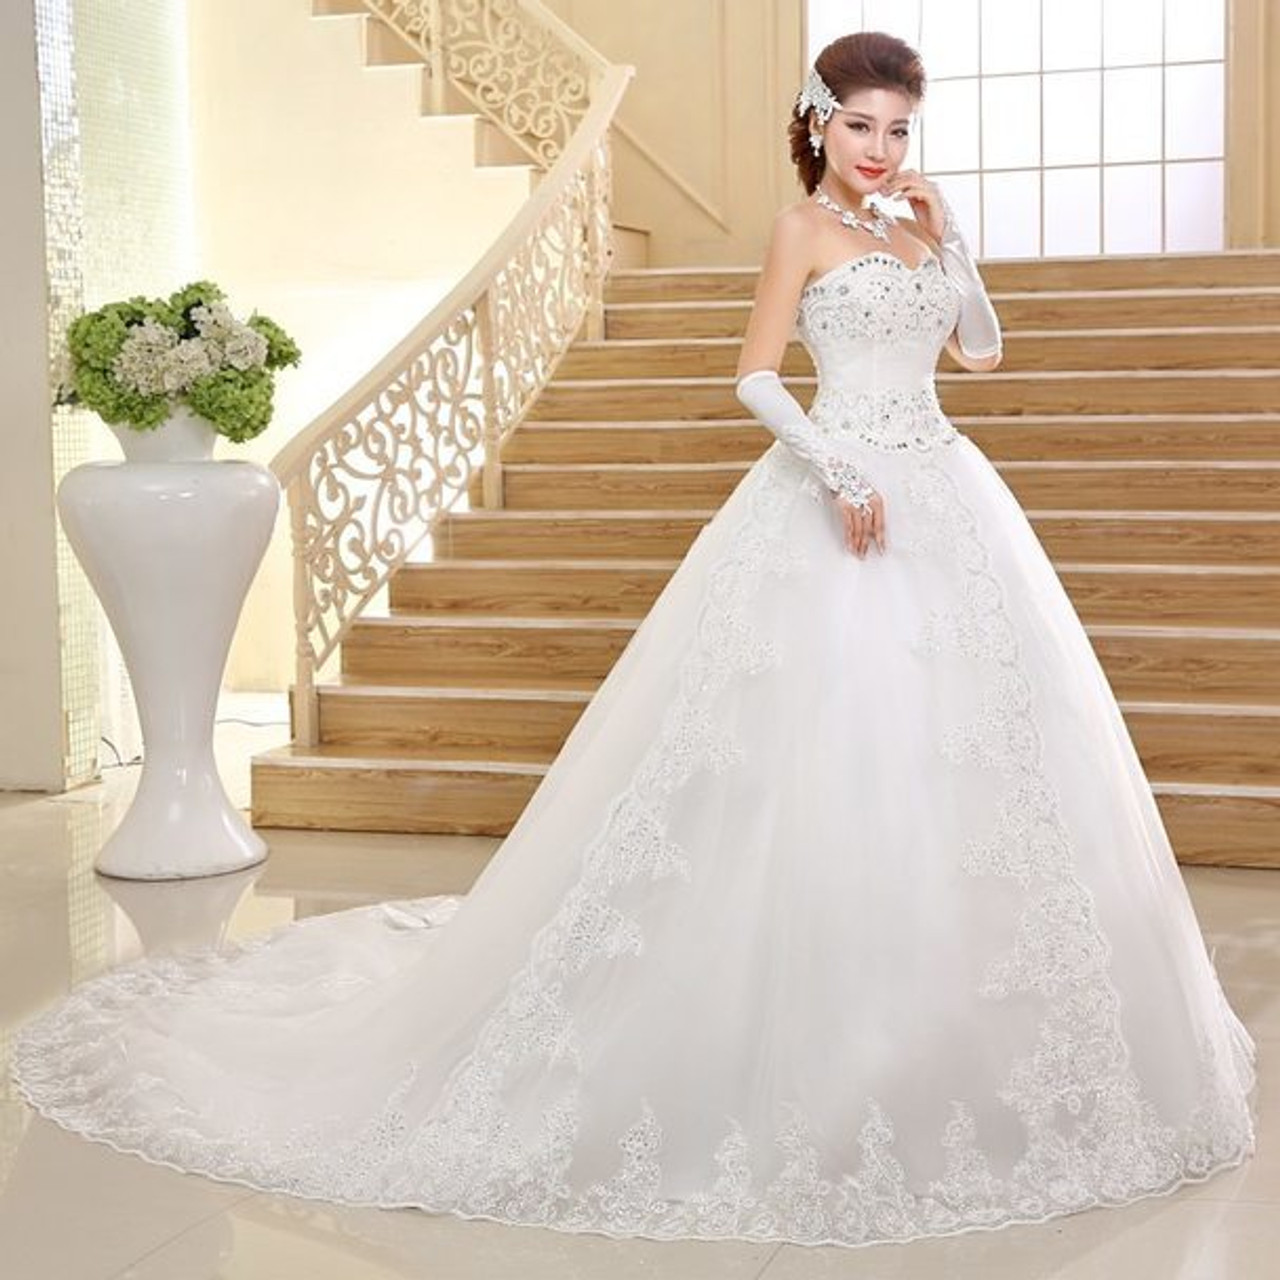 Women's Wedding Collection